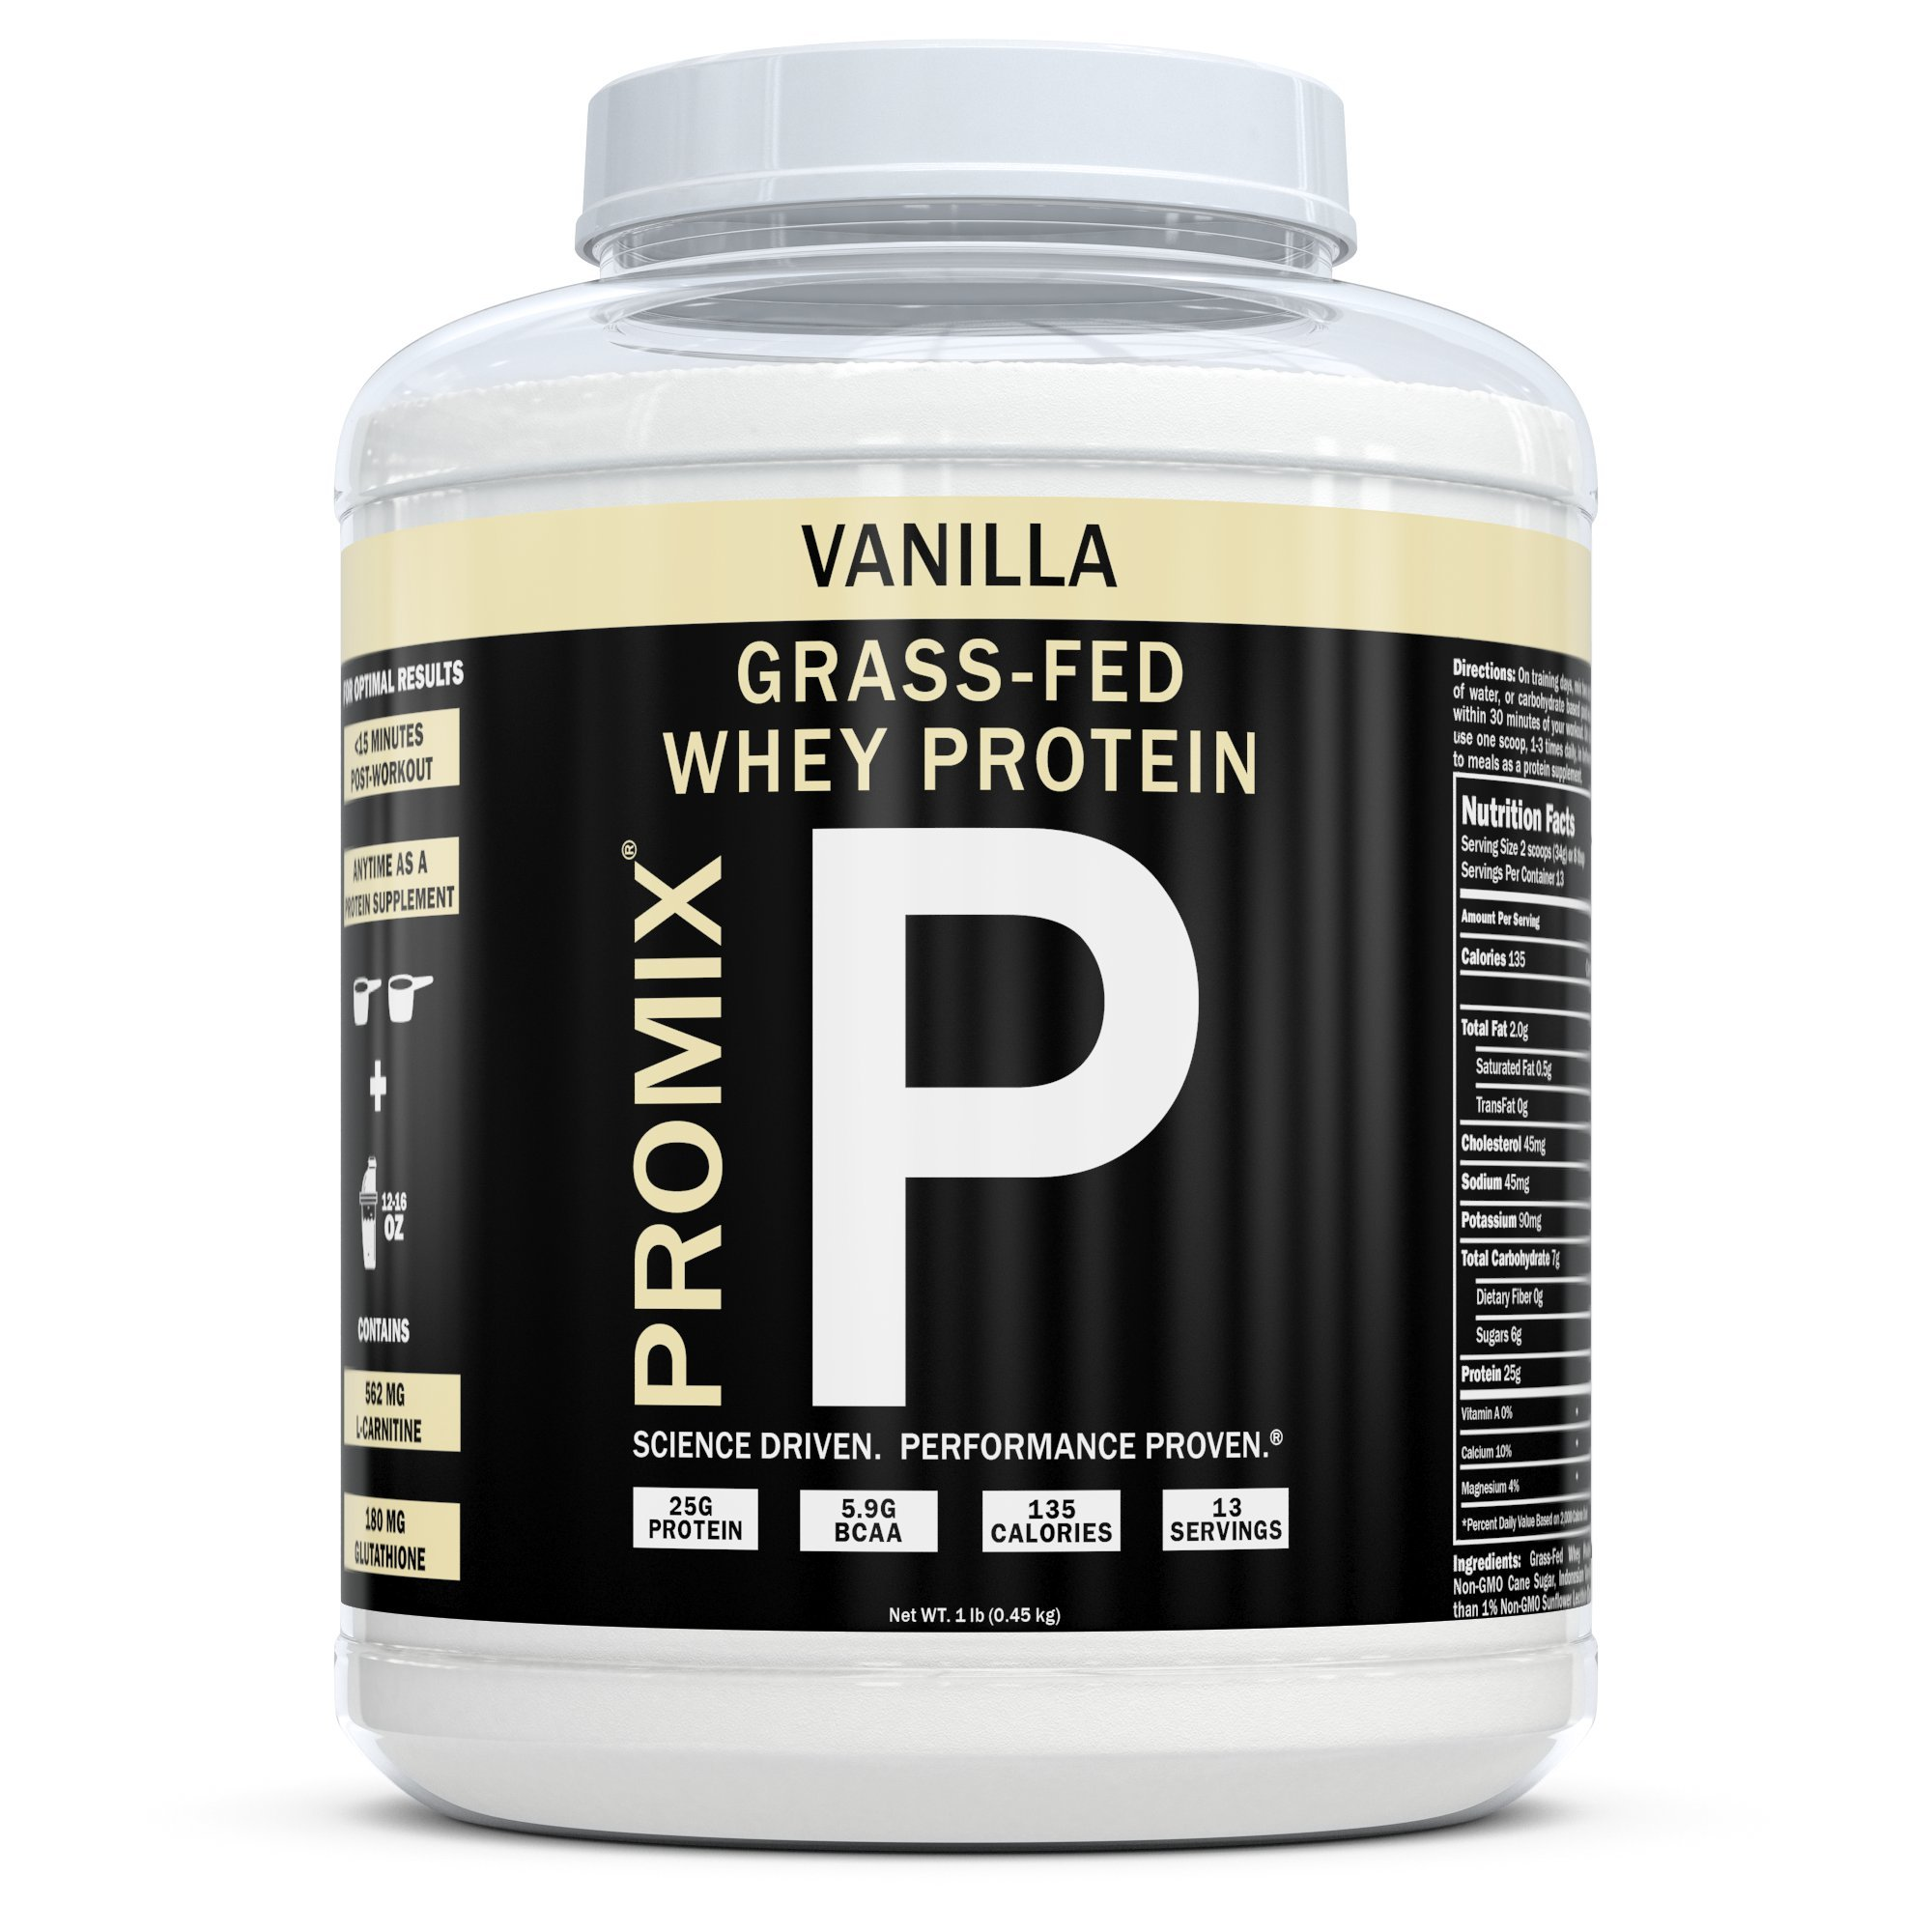 Performance Whey Protein Powder Concentrate - PROMIX Standard 100 Percent All Natural Grass Fed & Undenatured - Best for Optimum Fitness Nutrition Shakes & Energy Smoothie Bowls: Vanilla 1 lb Bulk